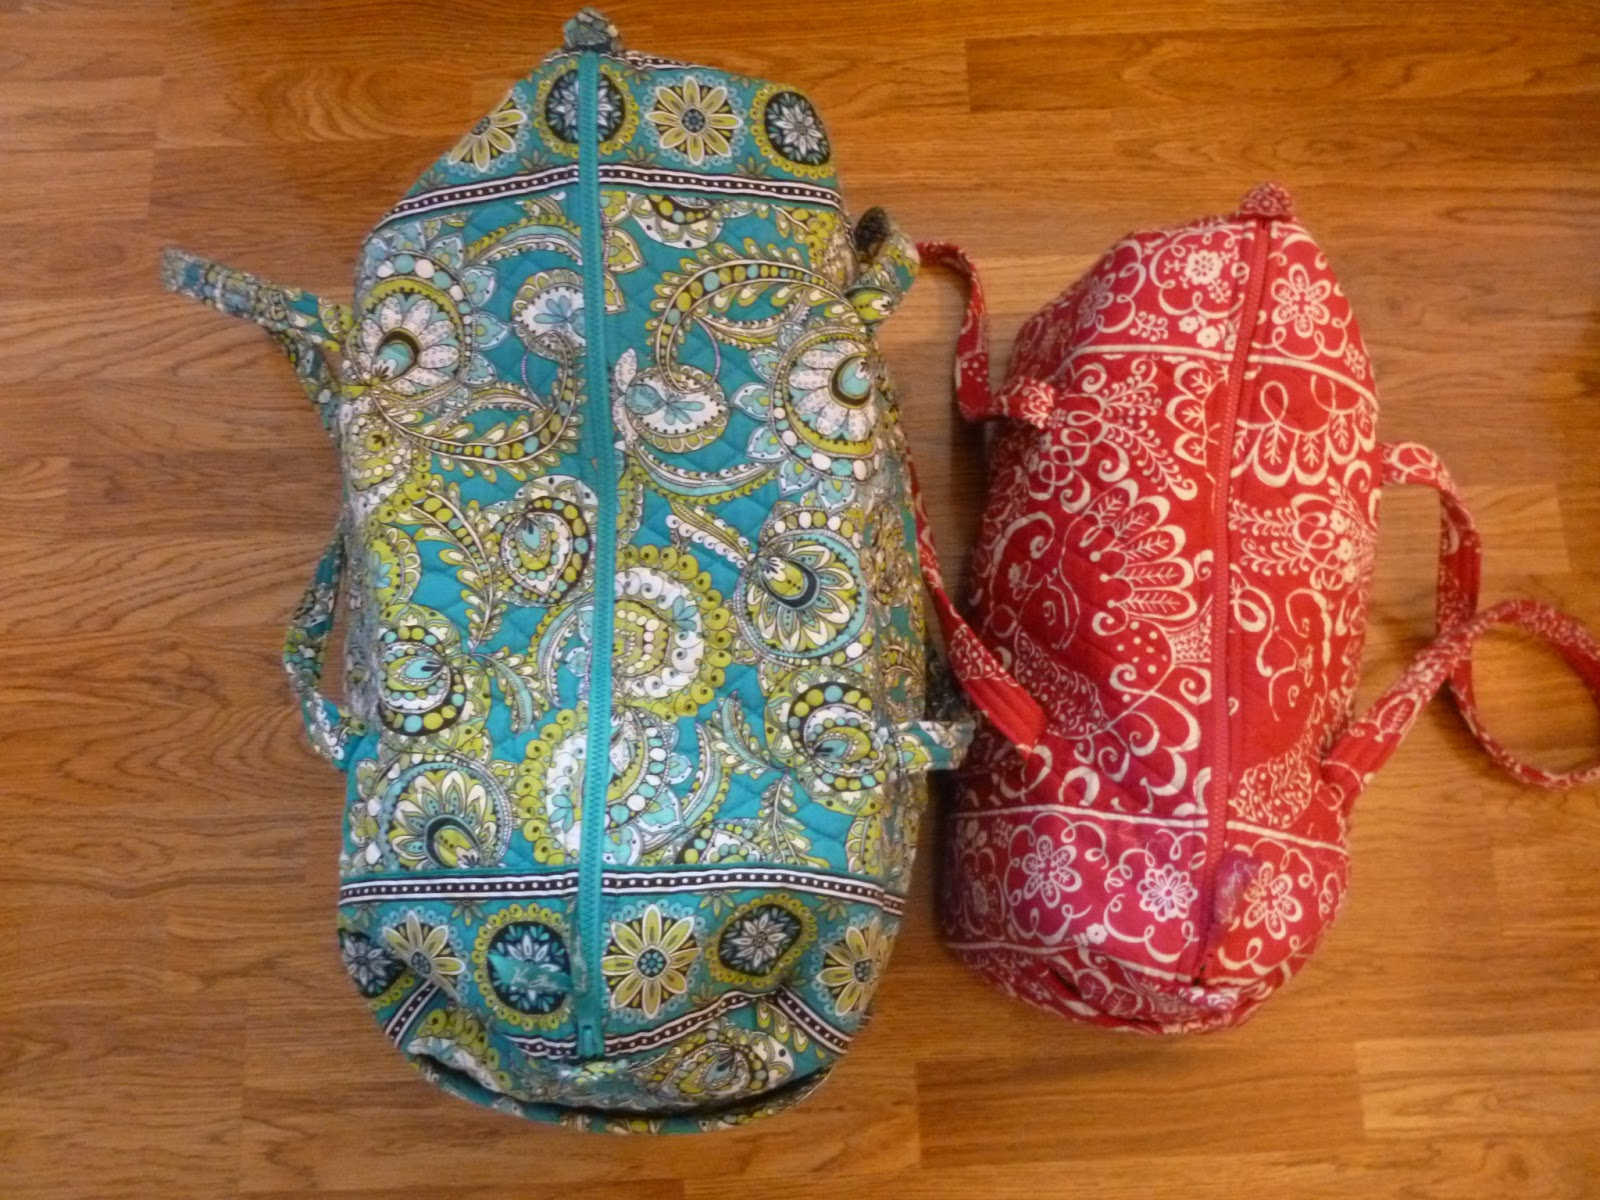 The Vera Vibe Day 2 Small Duffel Vs Large